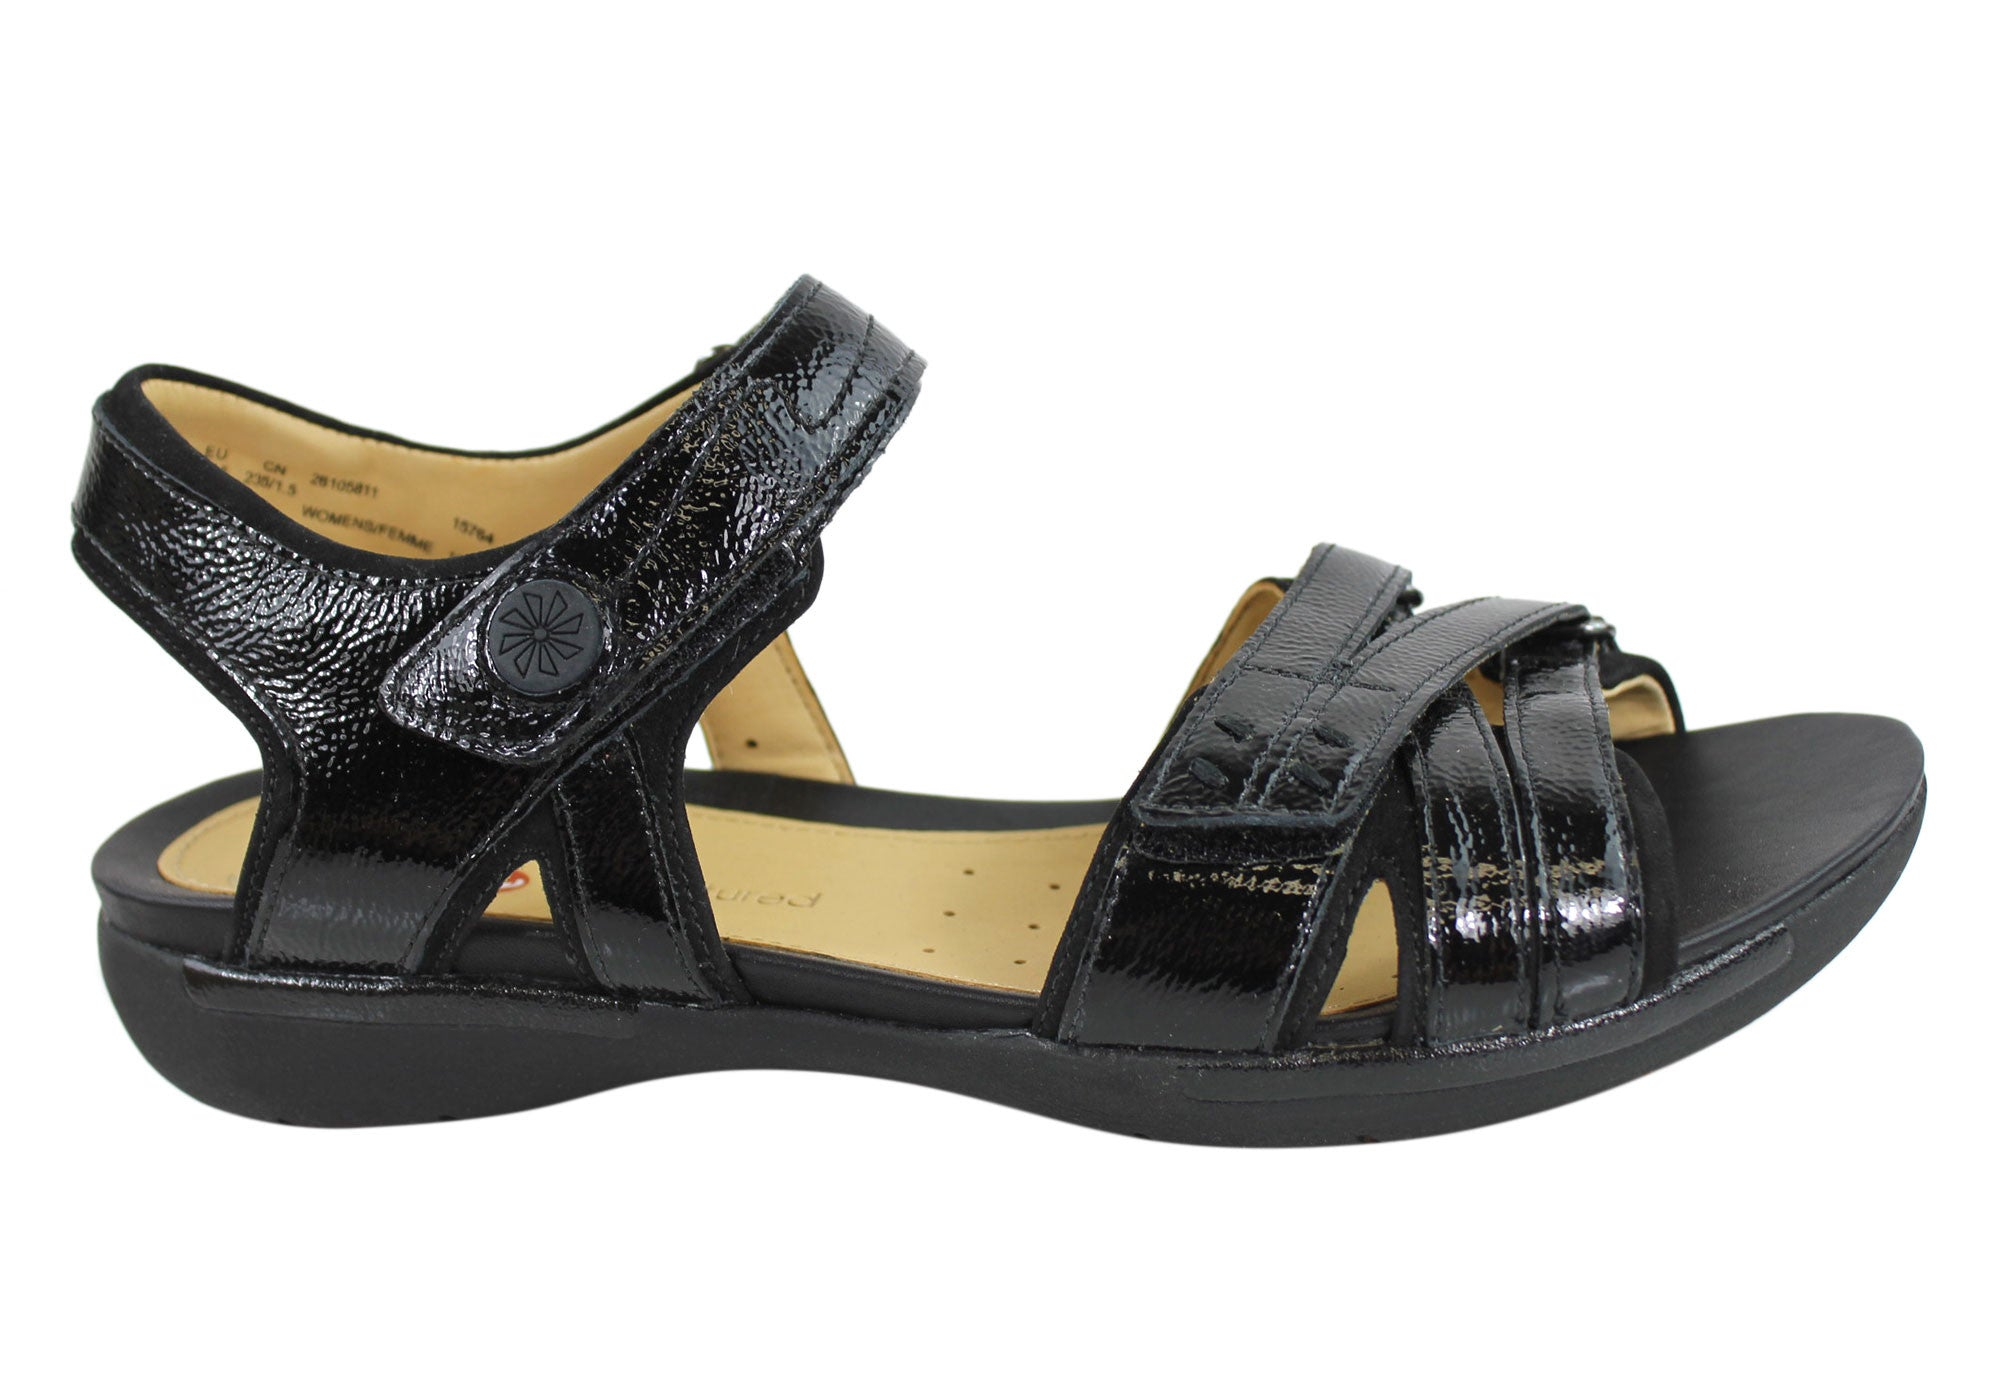 15b24c018925 Home Clarks Un Vasha Womens Leather Comfortable Sandals. Black Patent ...